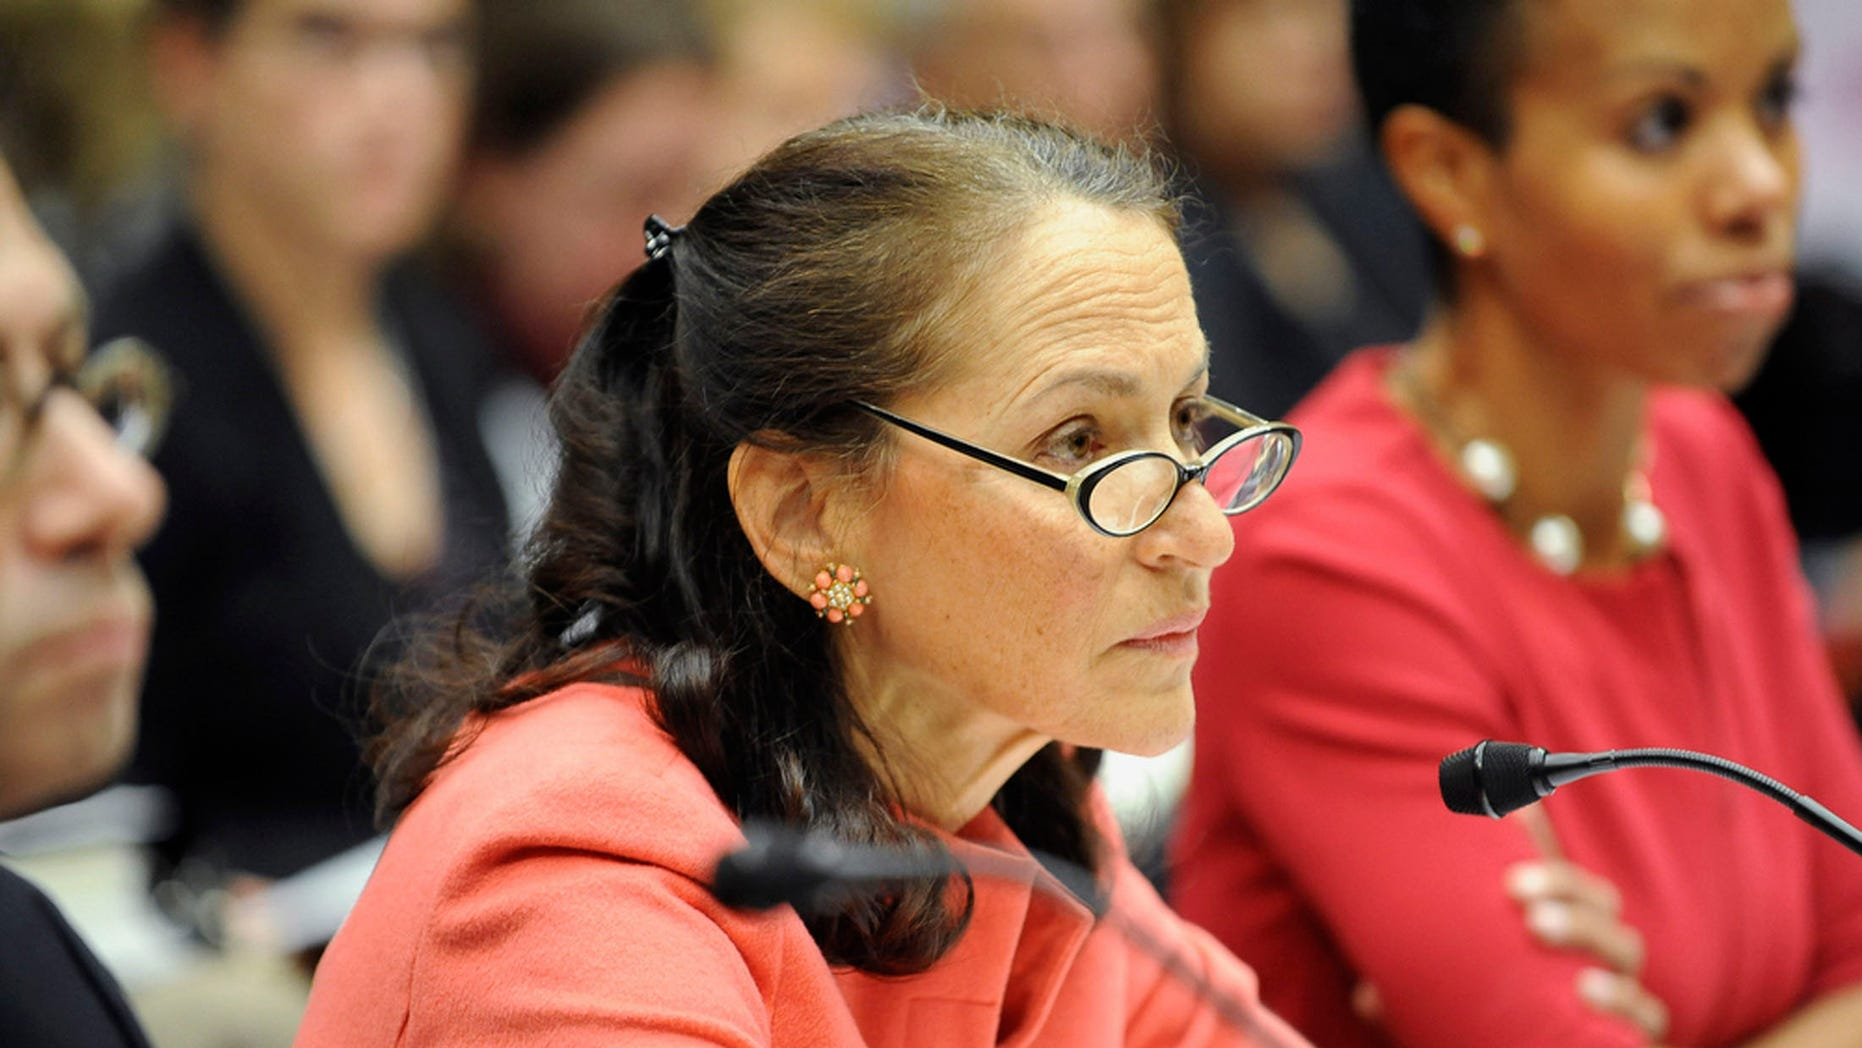 """Margaret Hamburg, Commissioner of the Food and Drug Administration, listens during a House Energy and Commerce Oversight and Investigations Subcommittee hearing on """"The Fungal Meningitis Outbreak: Could It Have Been Prevented"""" at the Rayburn House Office Building in Capitol Hill."""